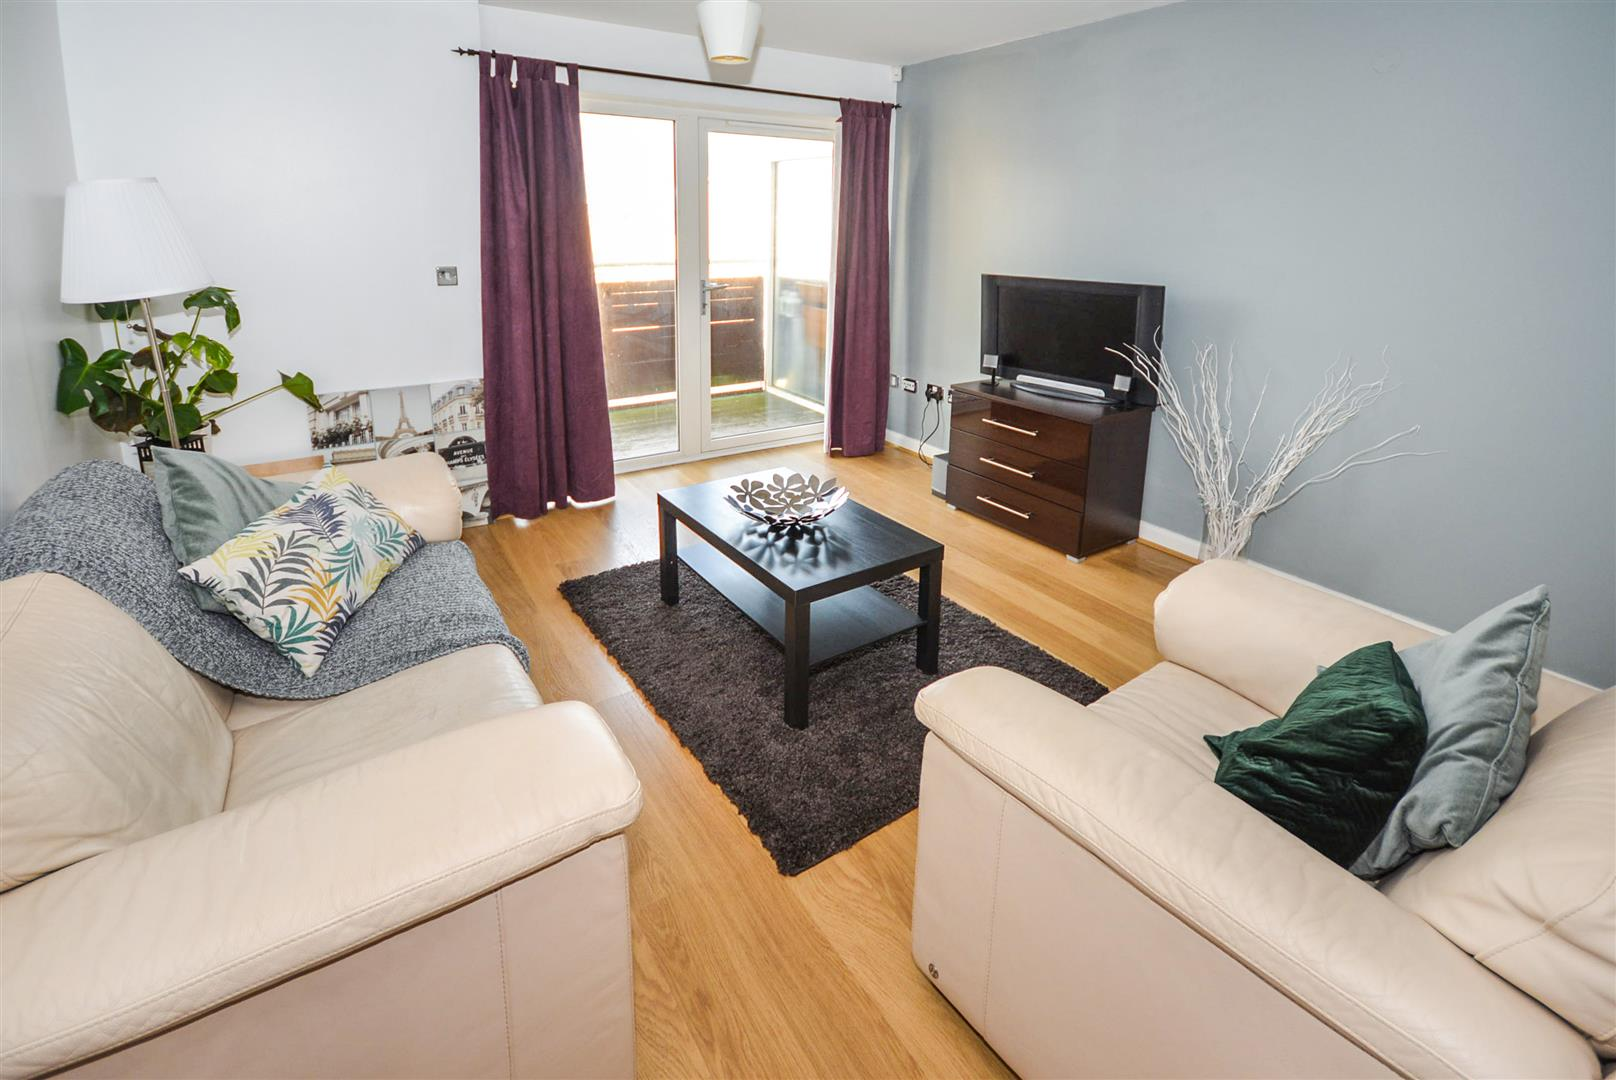 1 bed apartment for sale in Chandlery Way, Cardiff, CF10